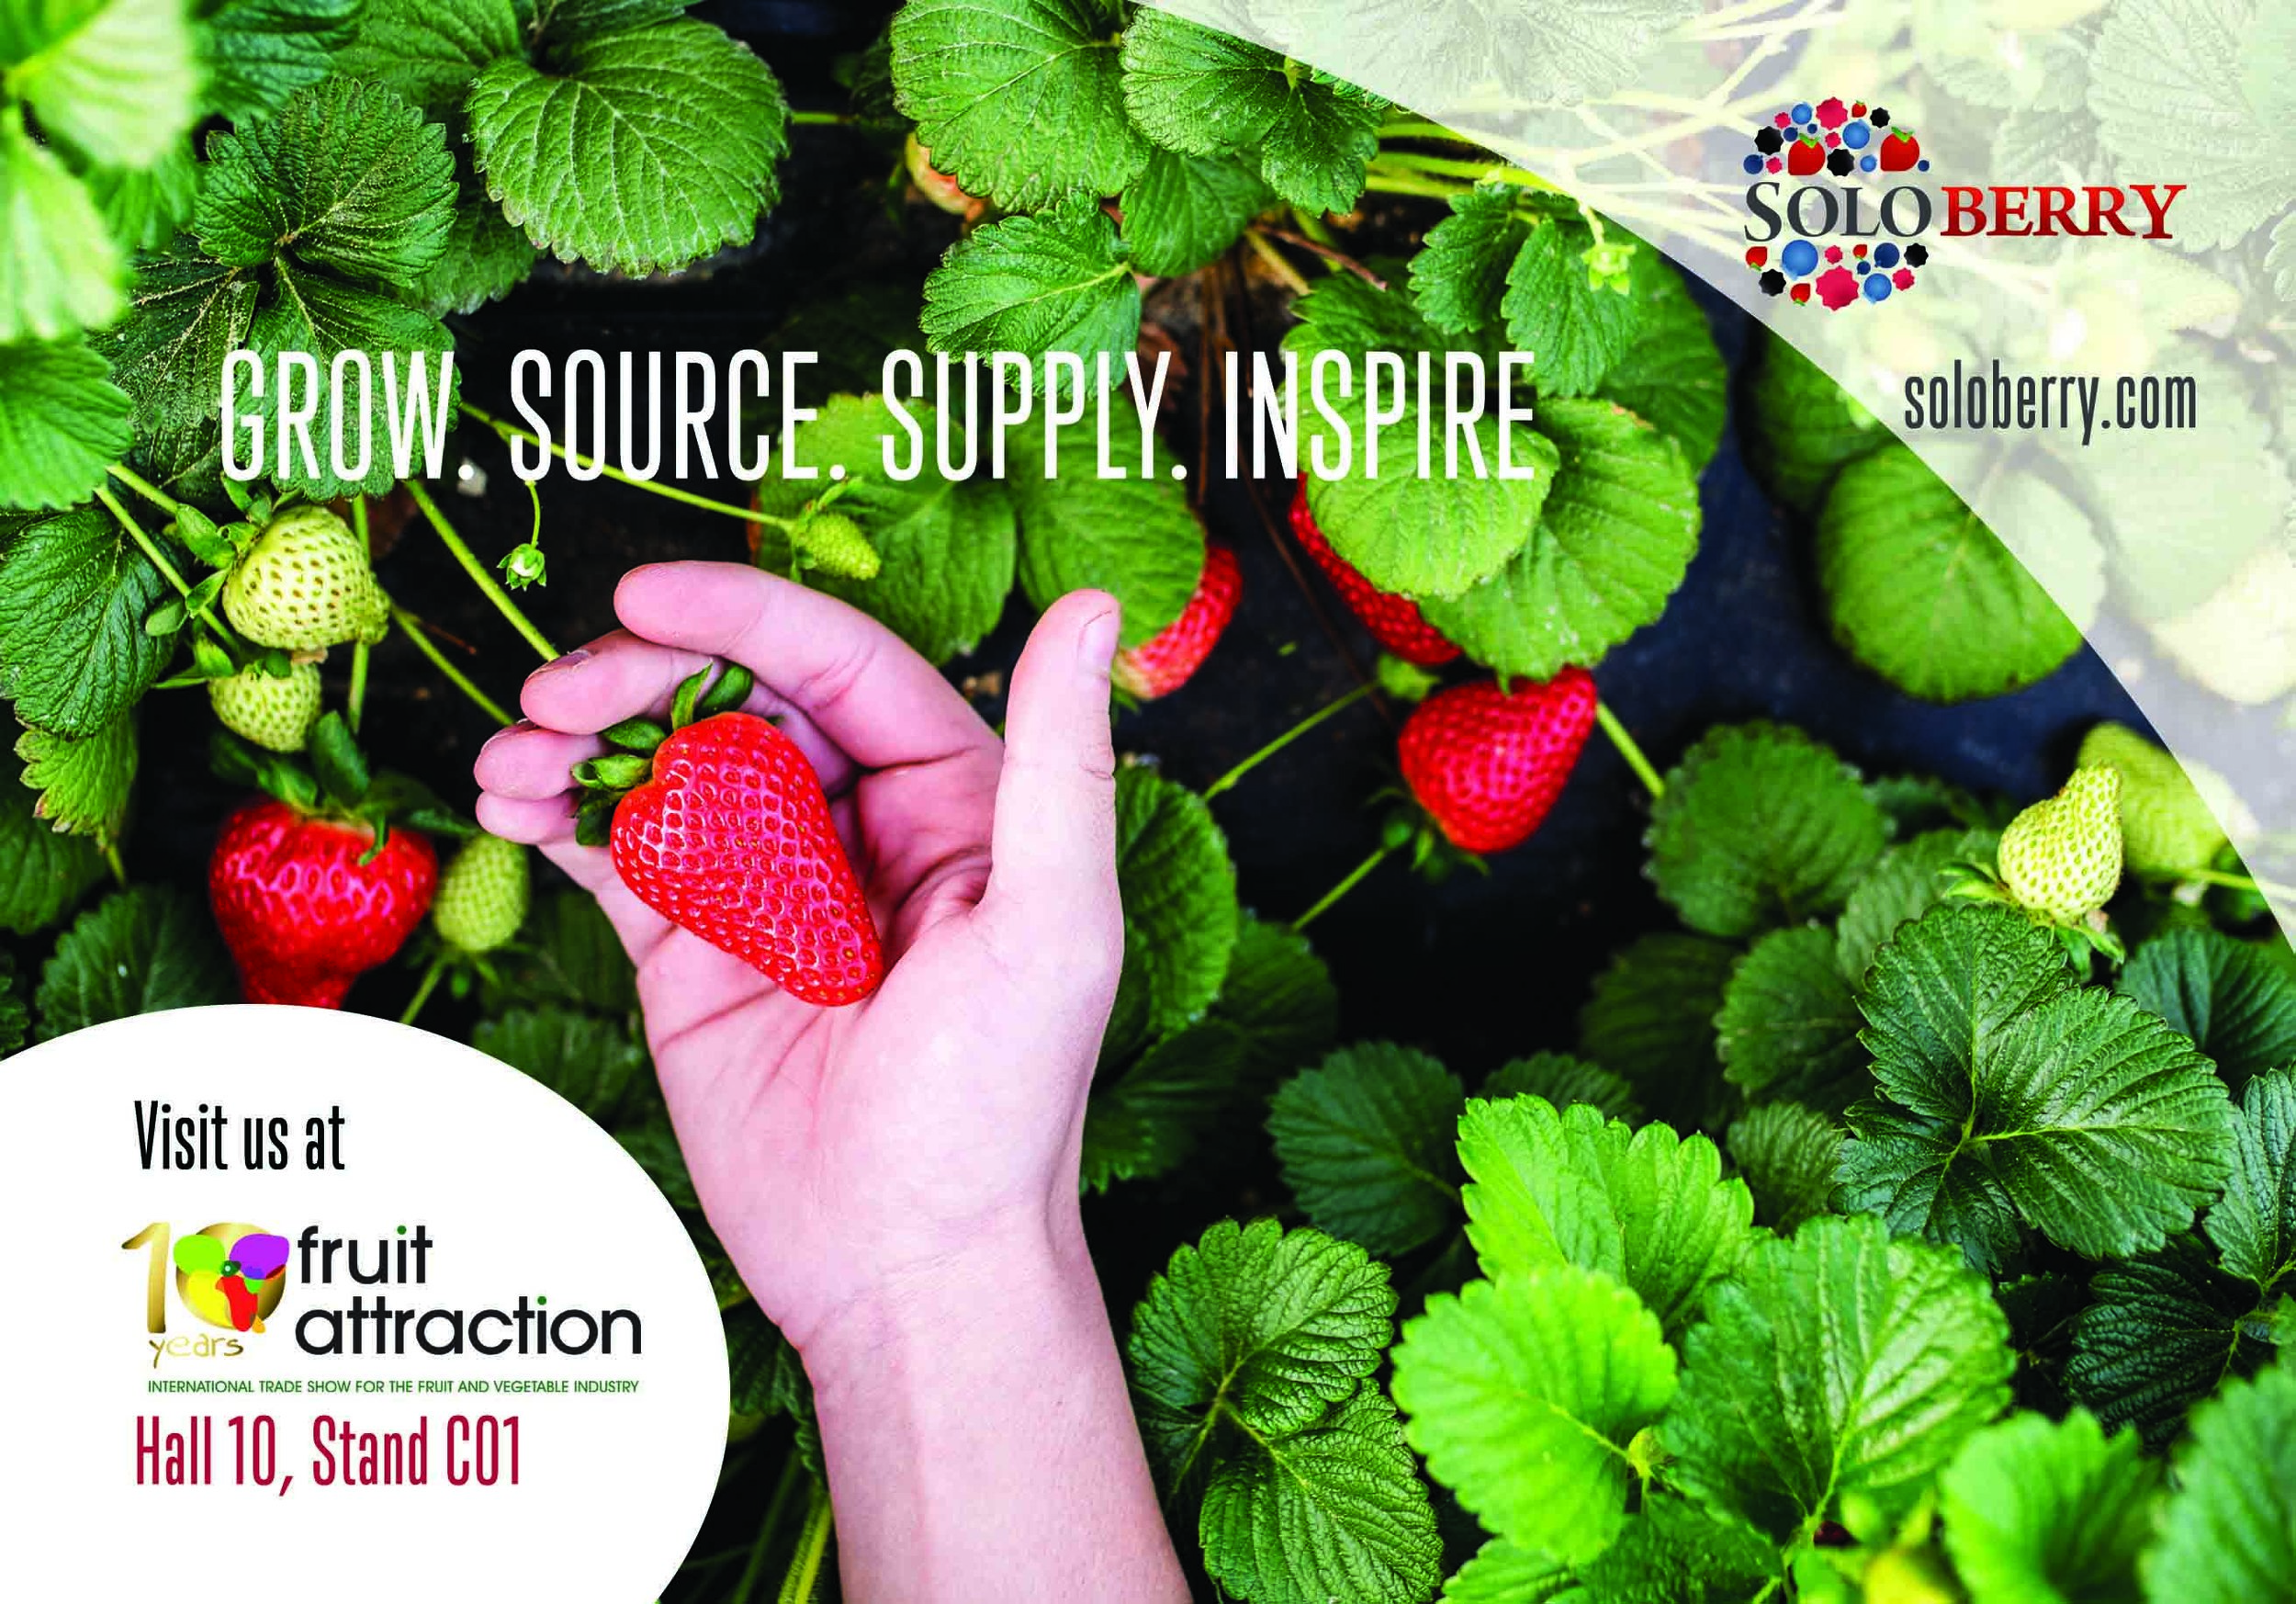 Soloberry will be attending Fruit Attraction, Madrid on 23rd-25th October 2018